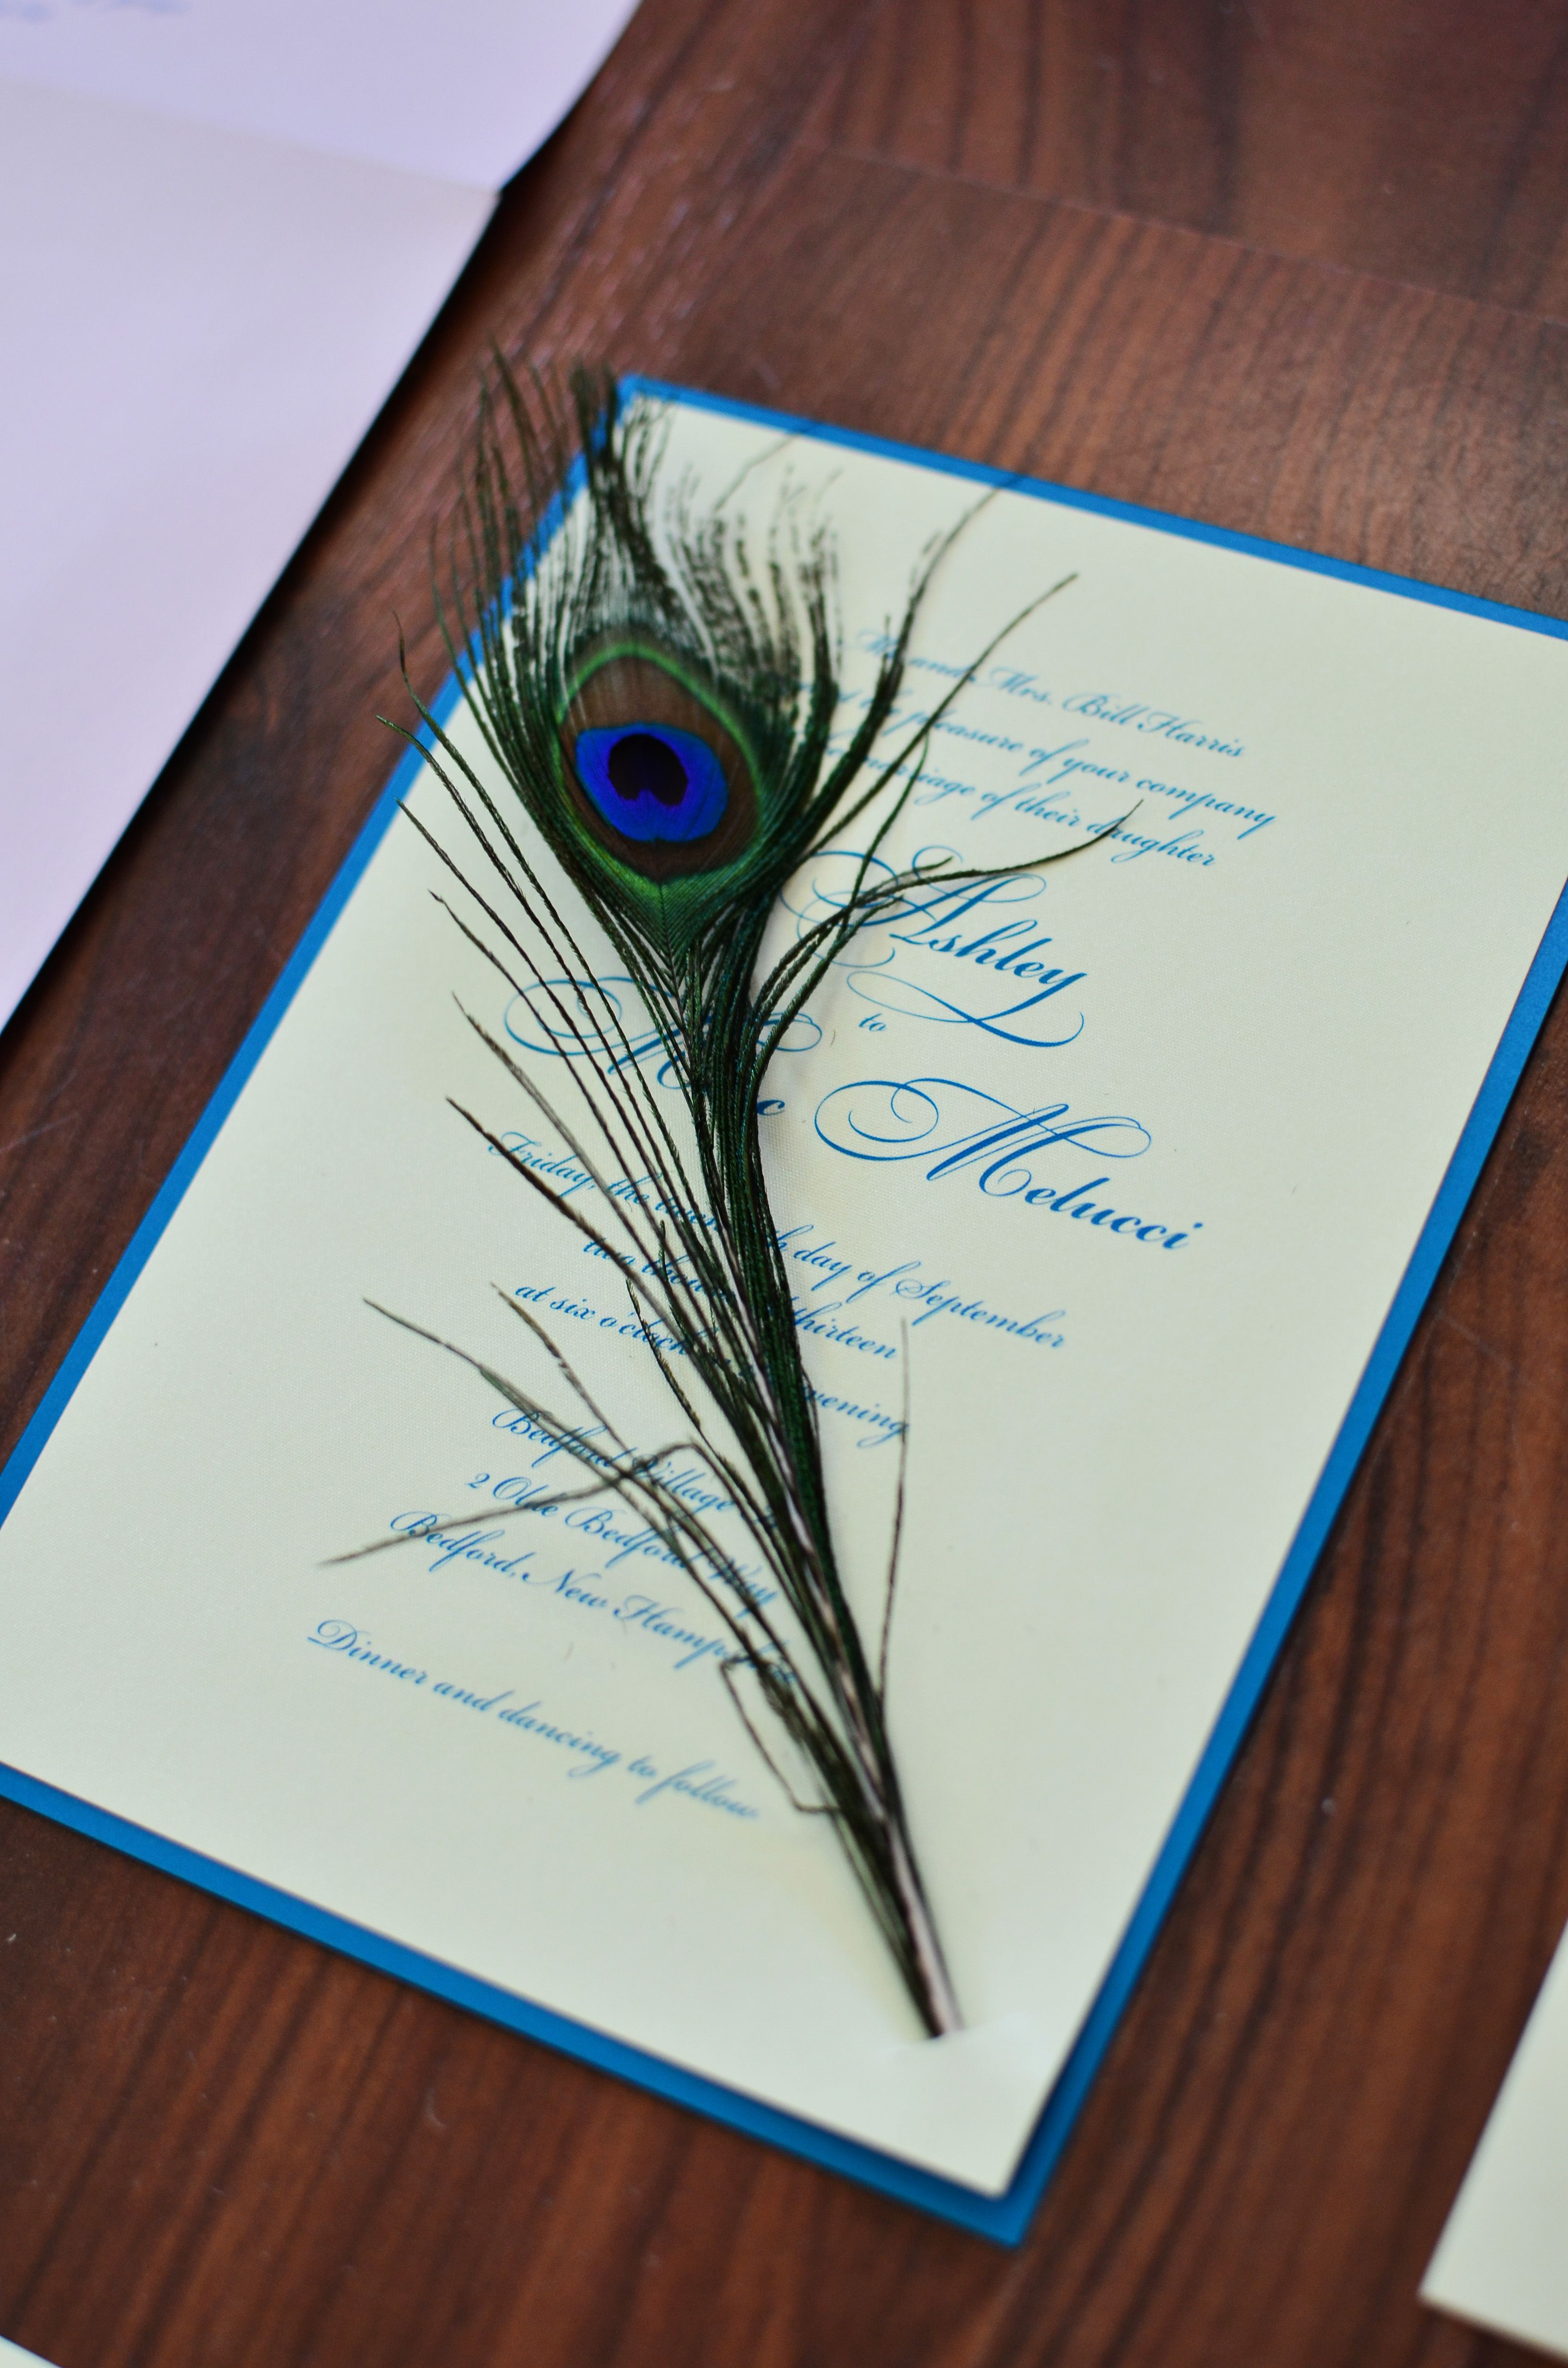 Peacock Wedding Invitation Done By Invited Design Studio In Nh Www